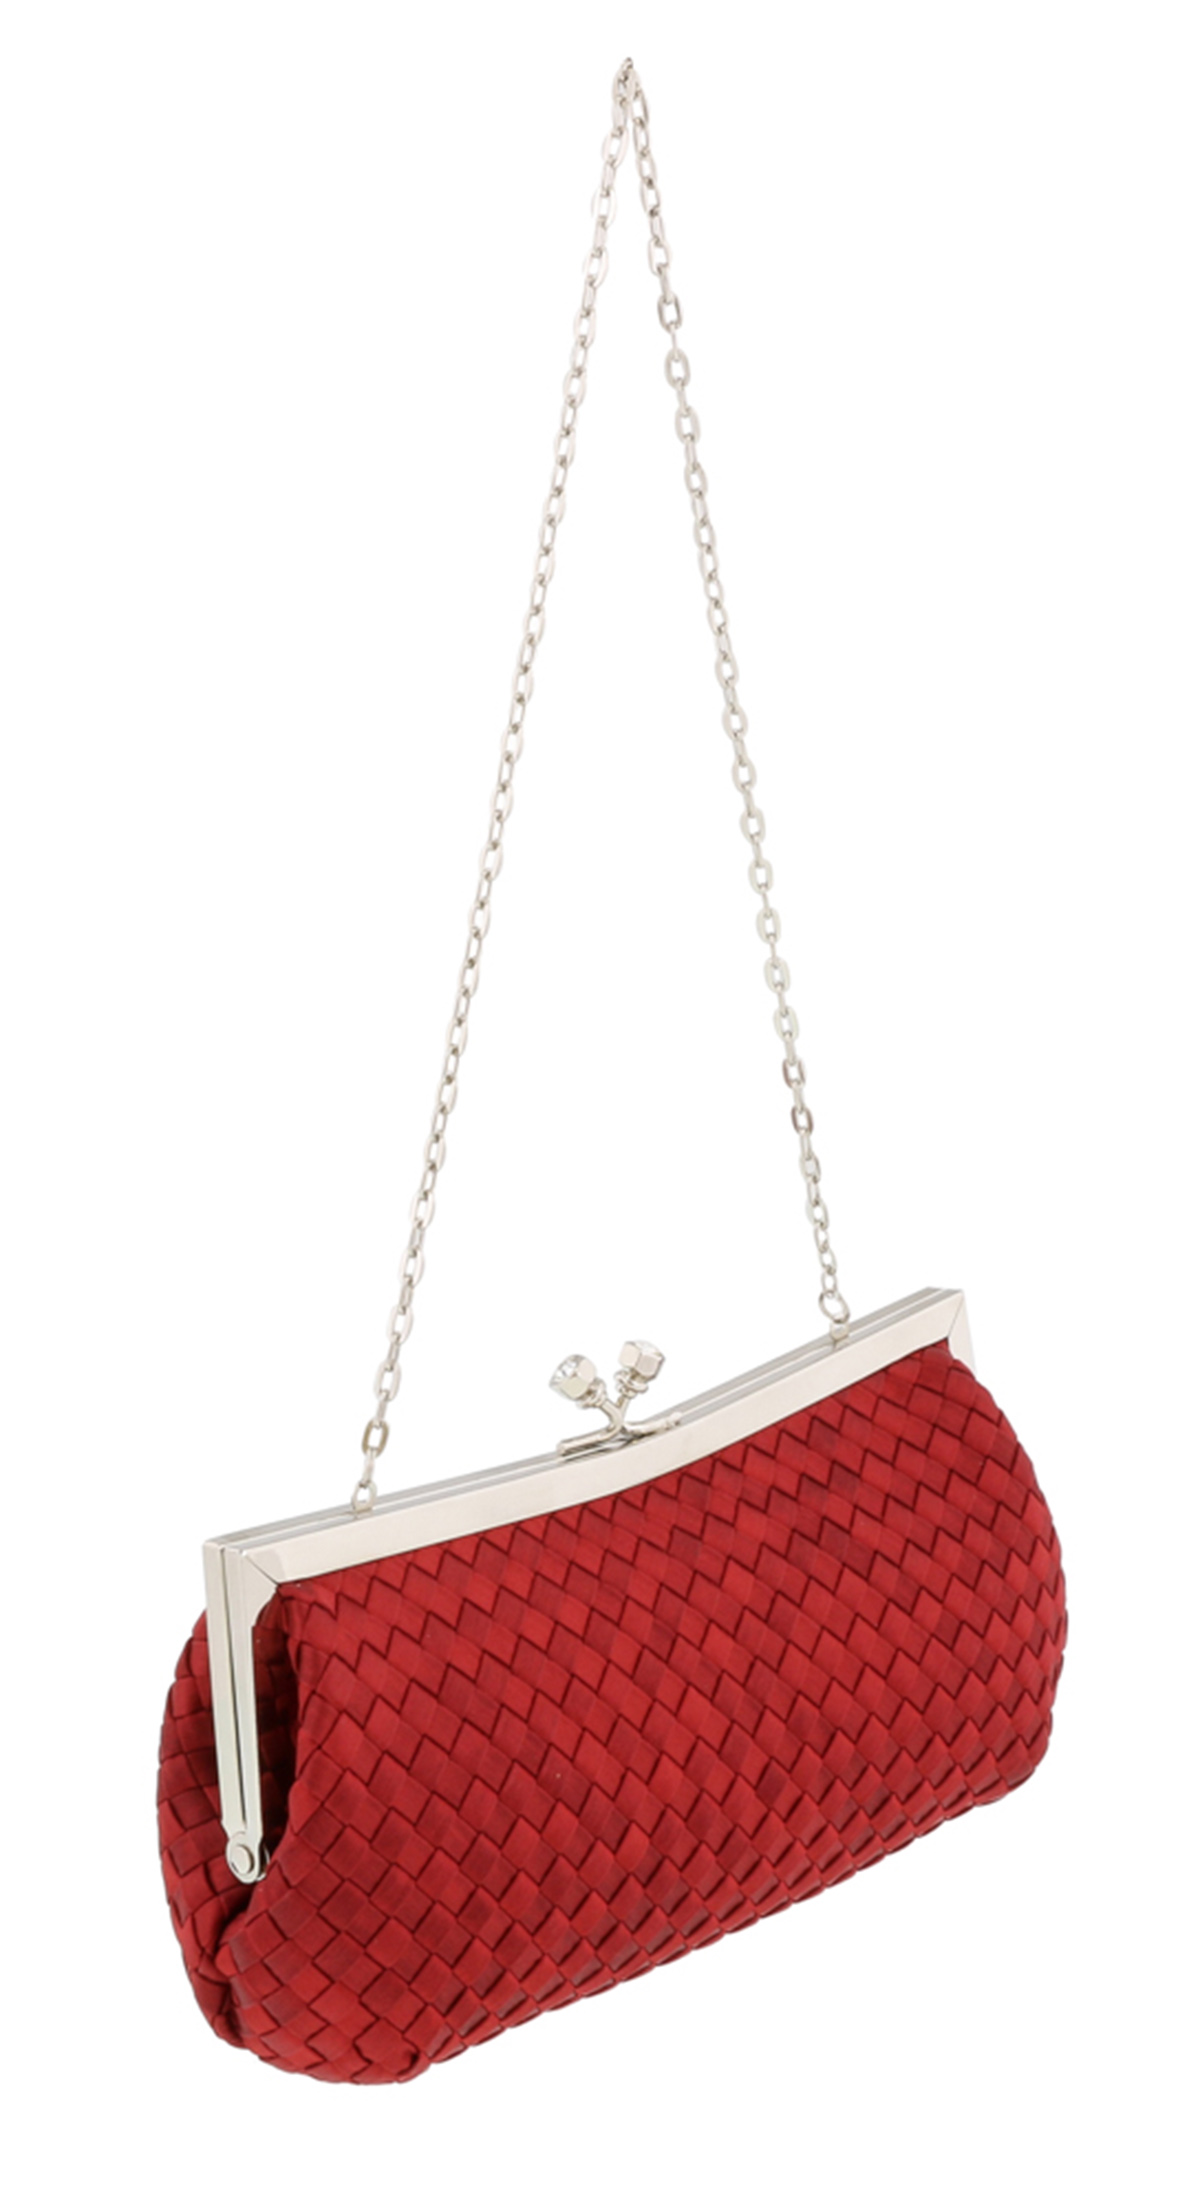 Scheilan  Red Fabric Weave Knot Clutch/Shoulder Bag